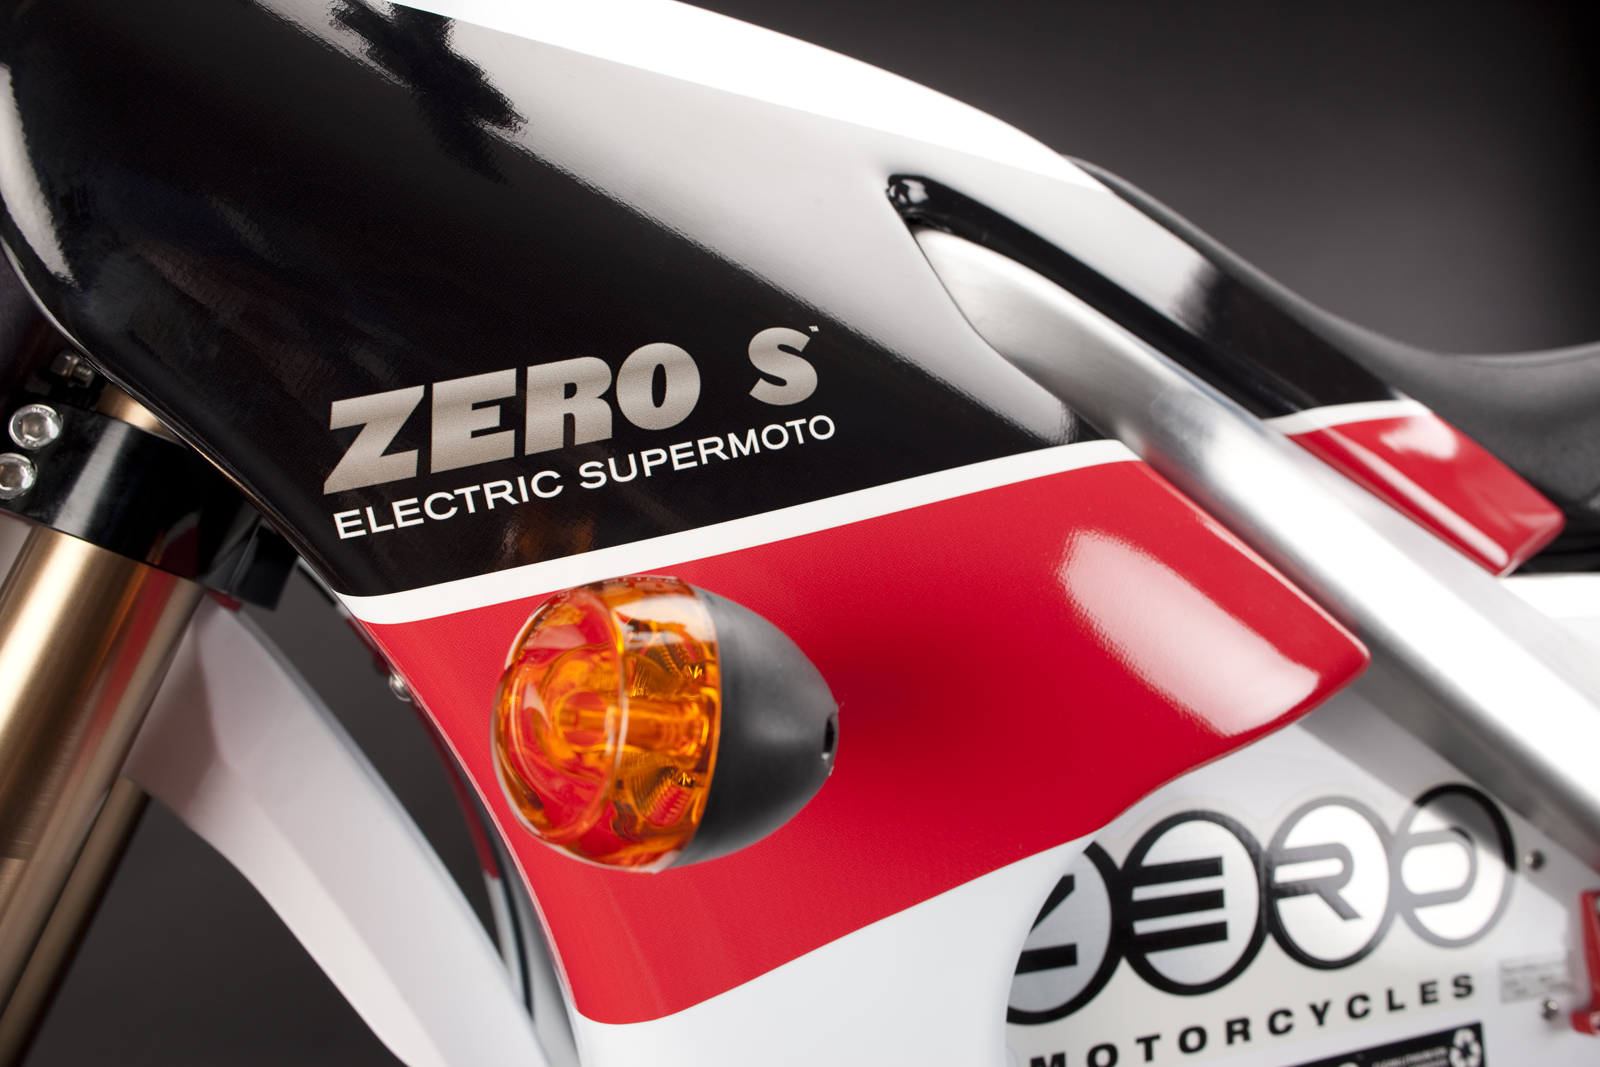 '.2010 Zero S Electric Motorcycle: Turn Signal.'